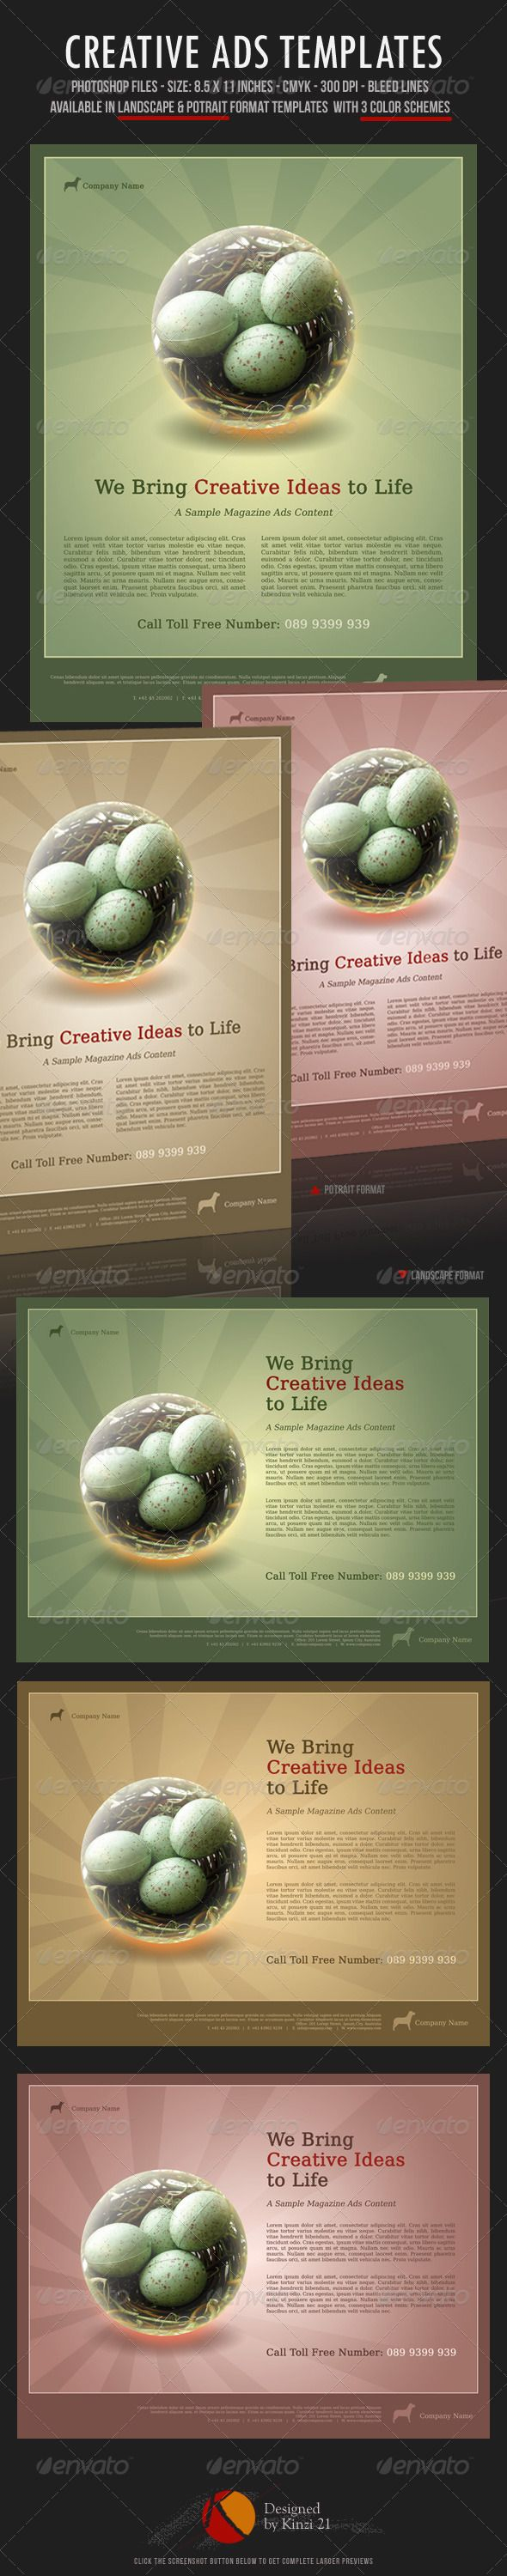 best ideas about sample flyers lawn care creative ads templates